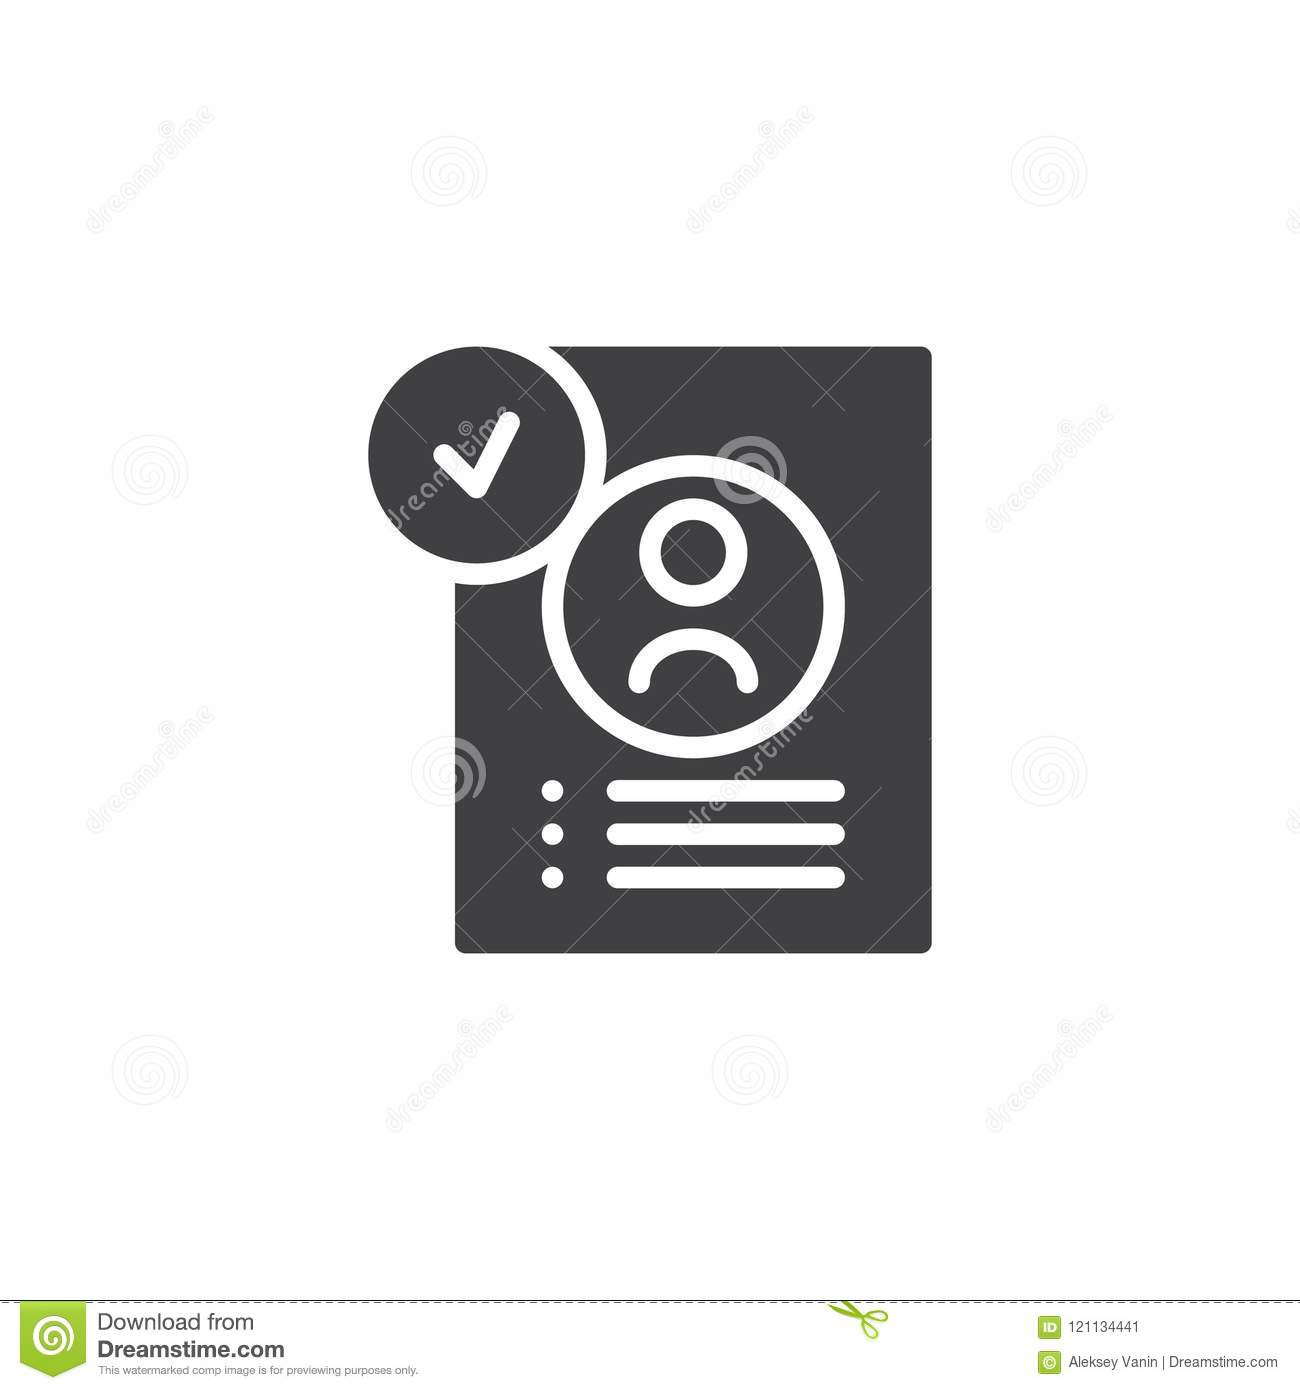 Approved Resume Vector Icon Stock Vector - Illustration of approve ...